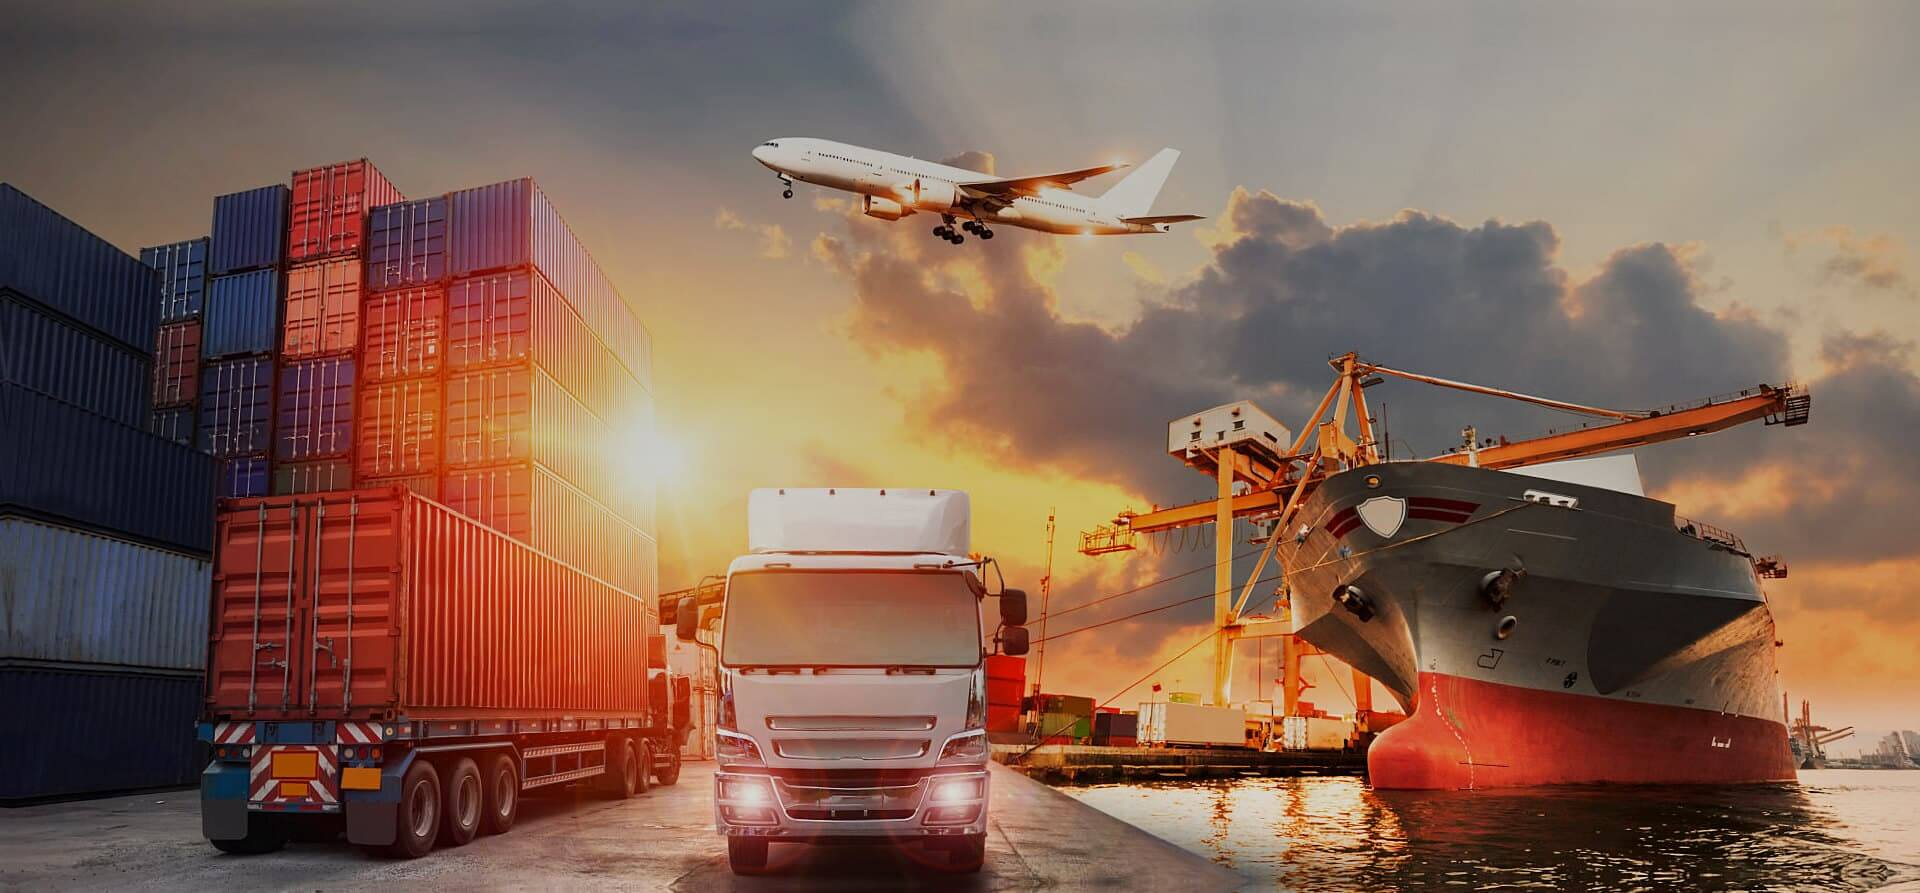 cargo truck and airplane